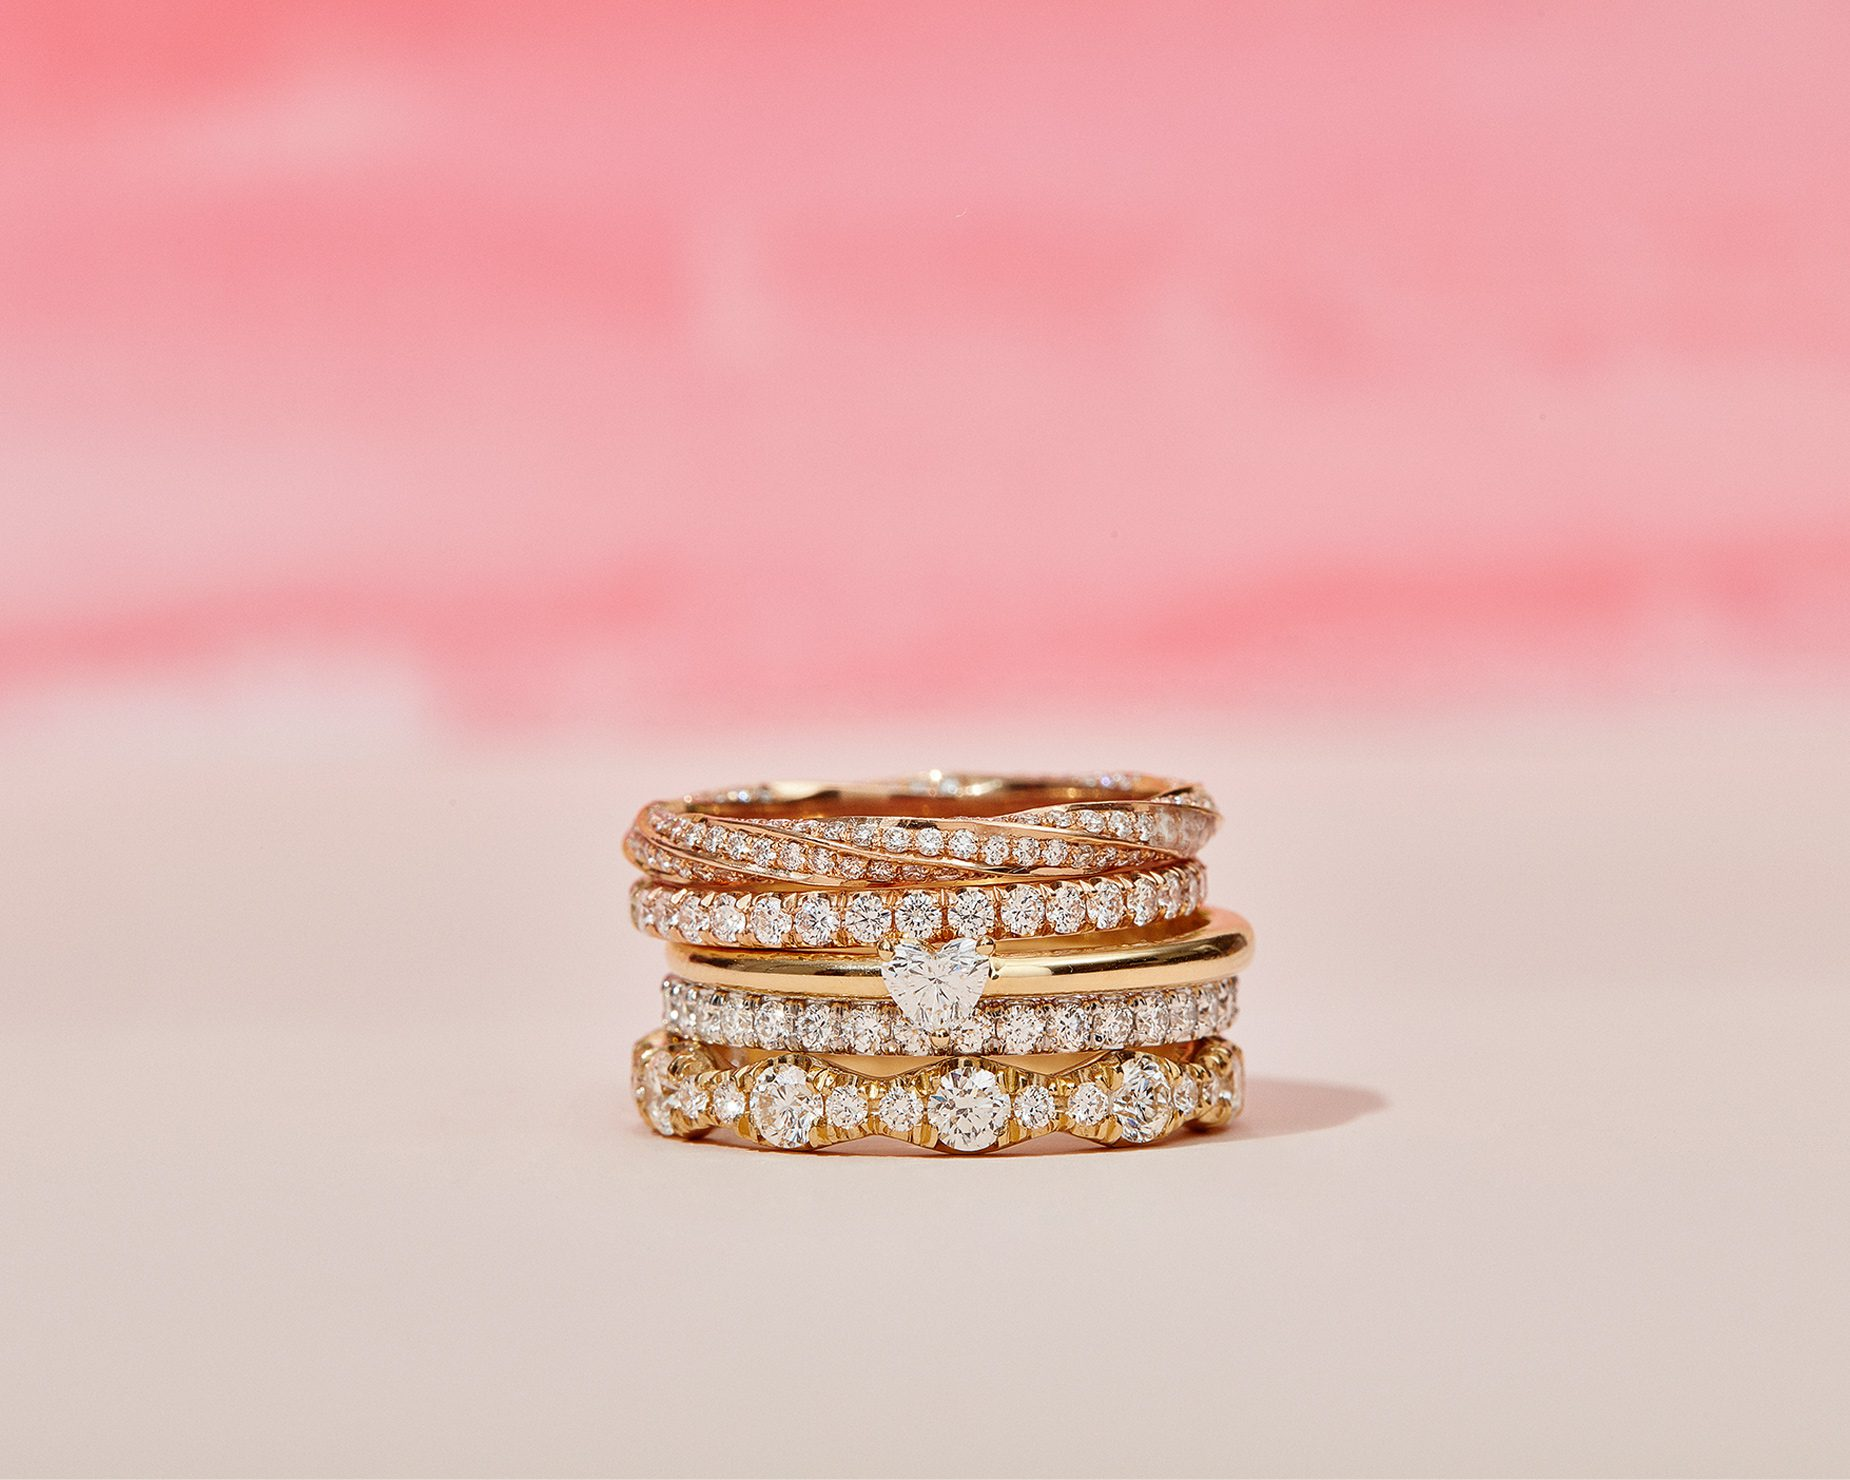 Rings Stack Lifestyle by Oui by Jean Dousset